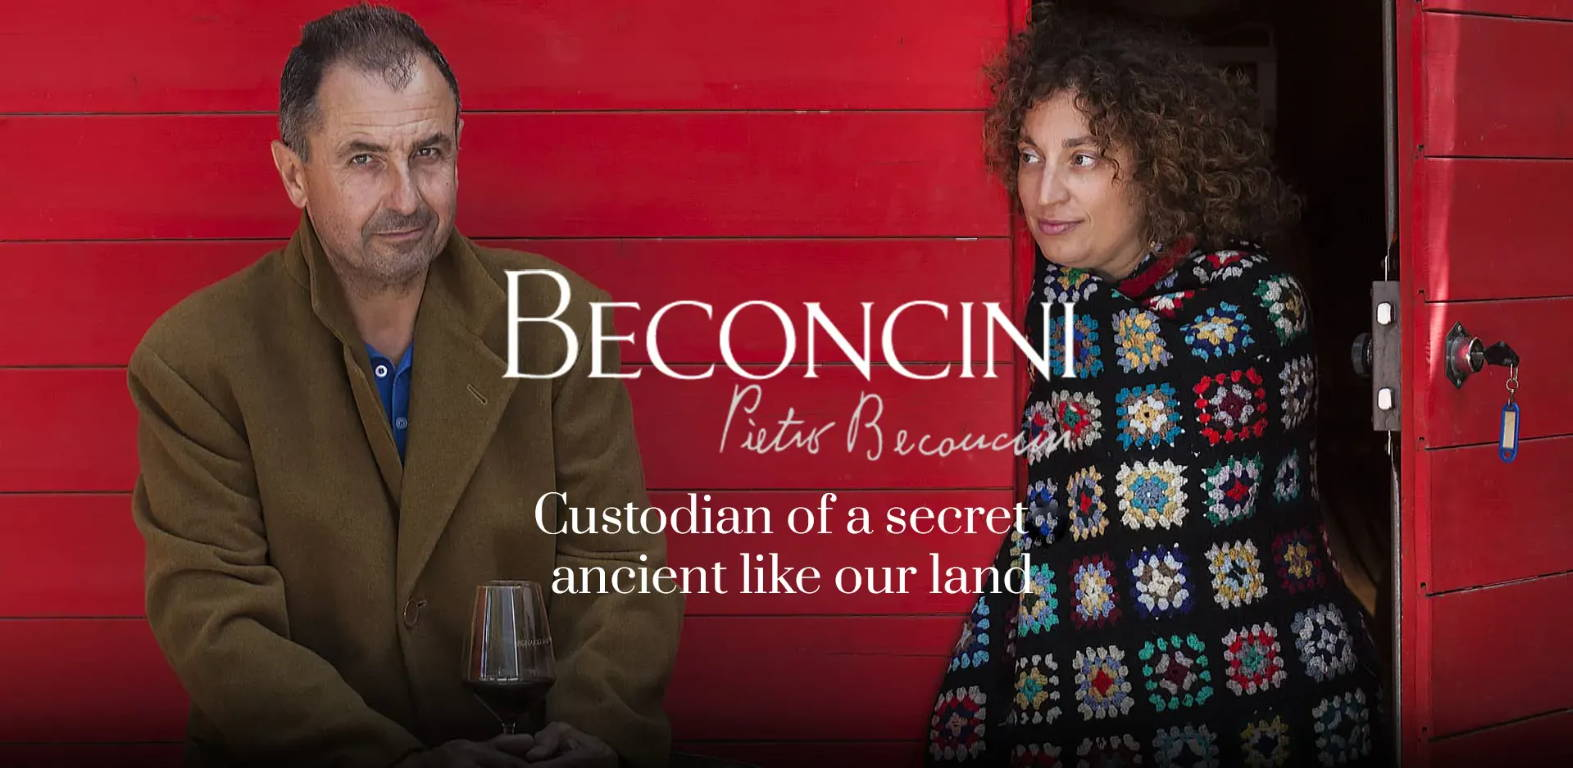 Pietro Beconcini Vineyards - Wine distributed by Beviamo International in Houston, TX